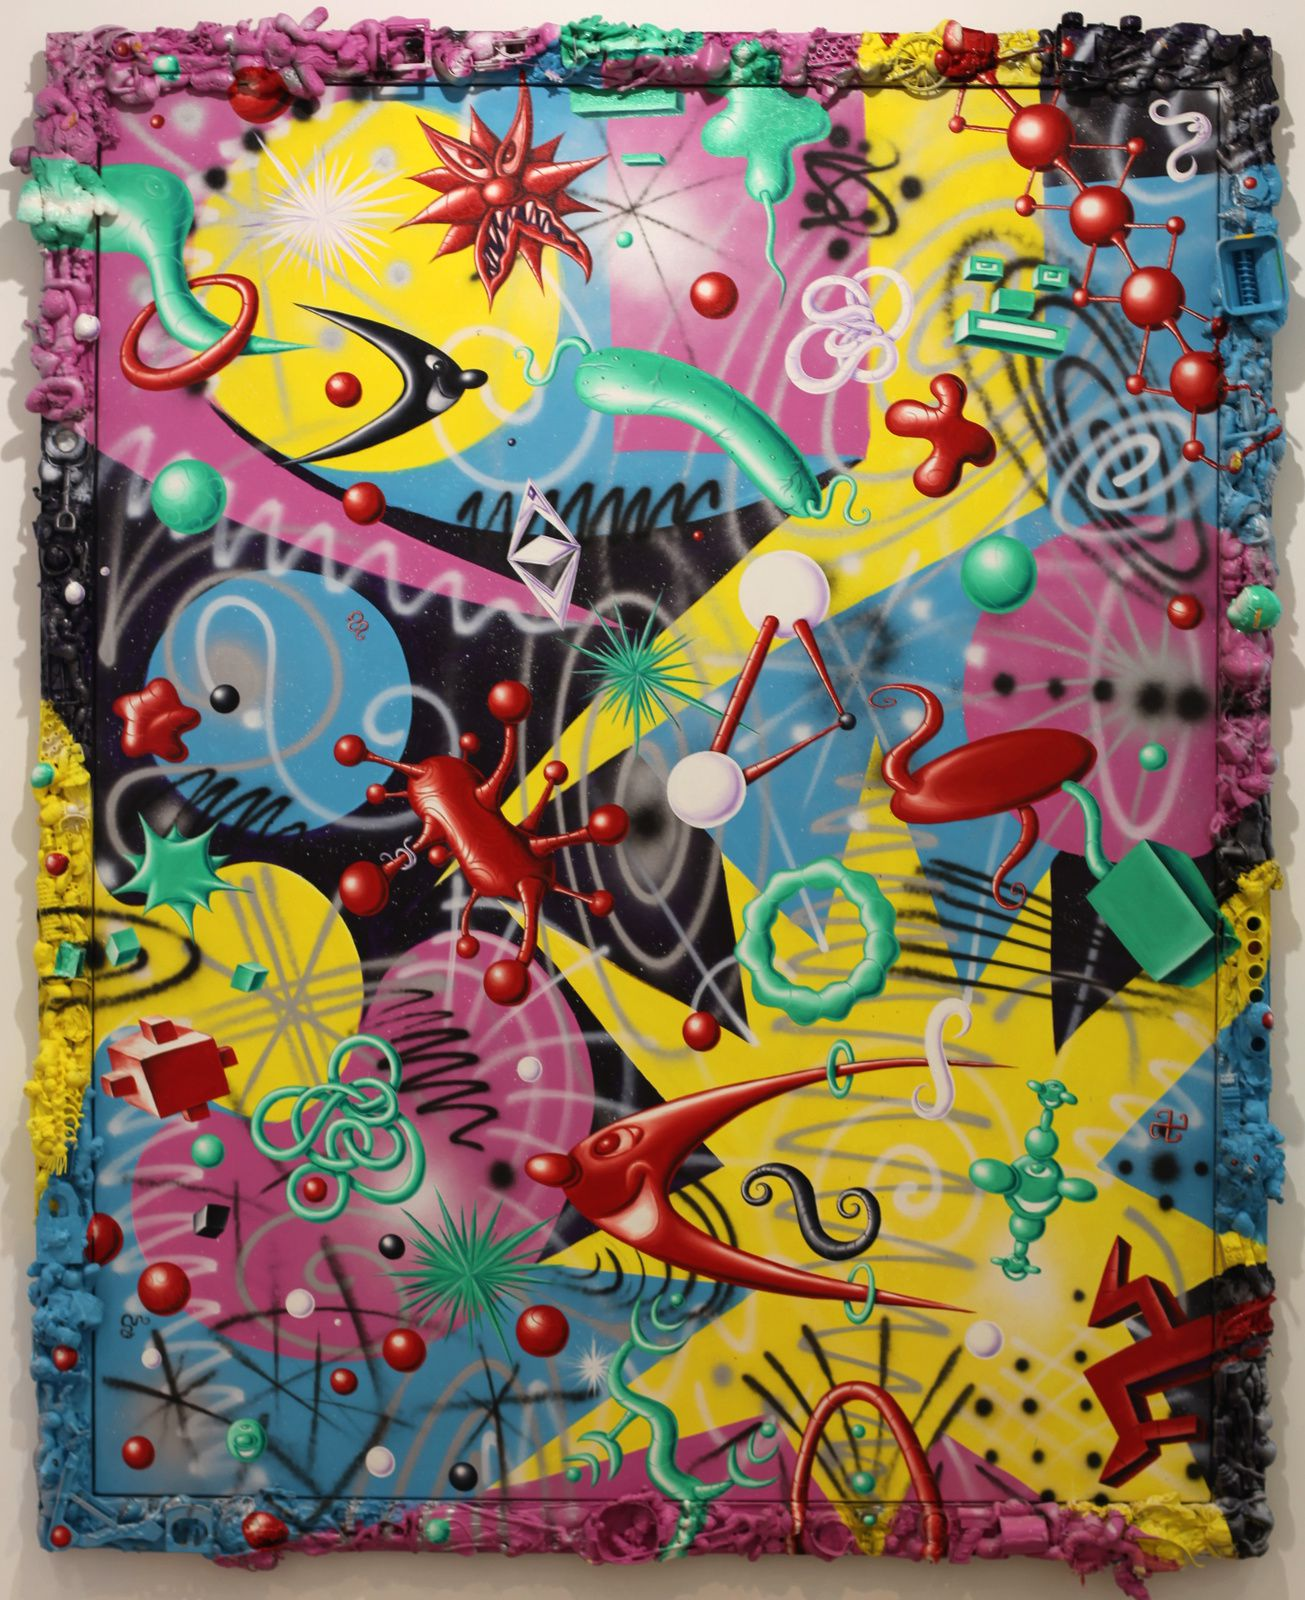 """Wrowow"", 1996 de Kenny SCHARF - Courtesy Galerie Laurent Strouk © Photo Éric Simon"